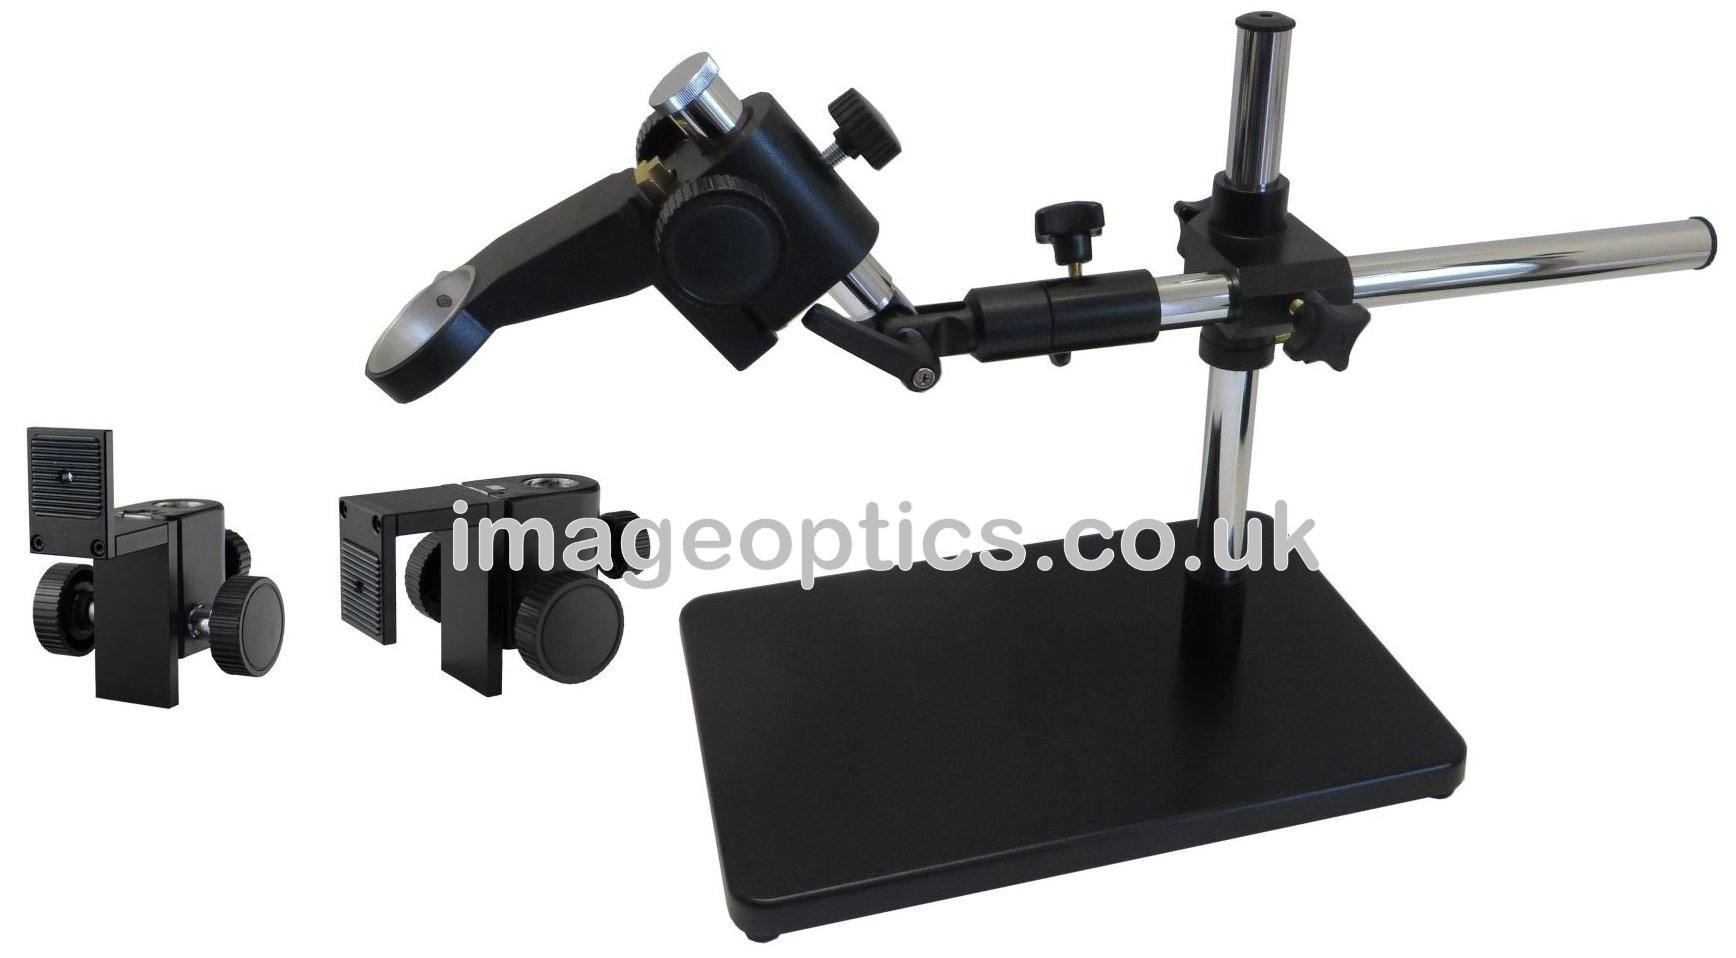 Boom stand with holders for camera or macro zoom lens